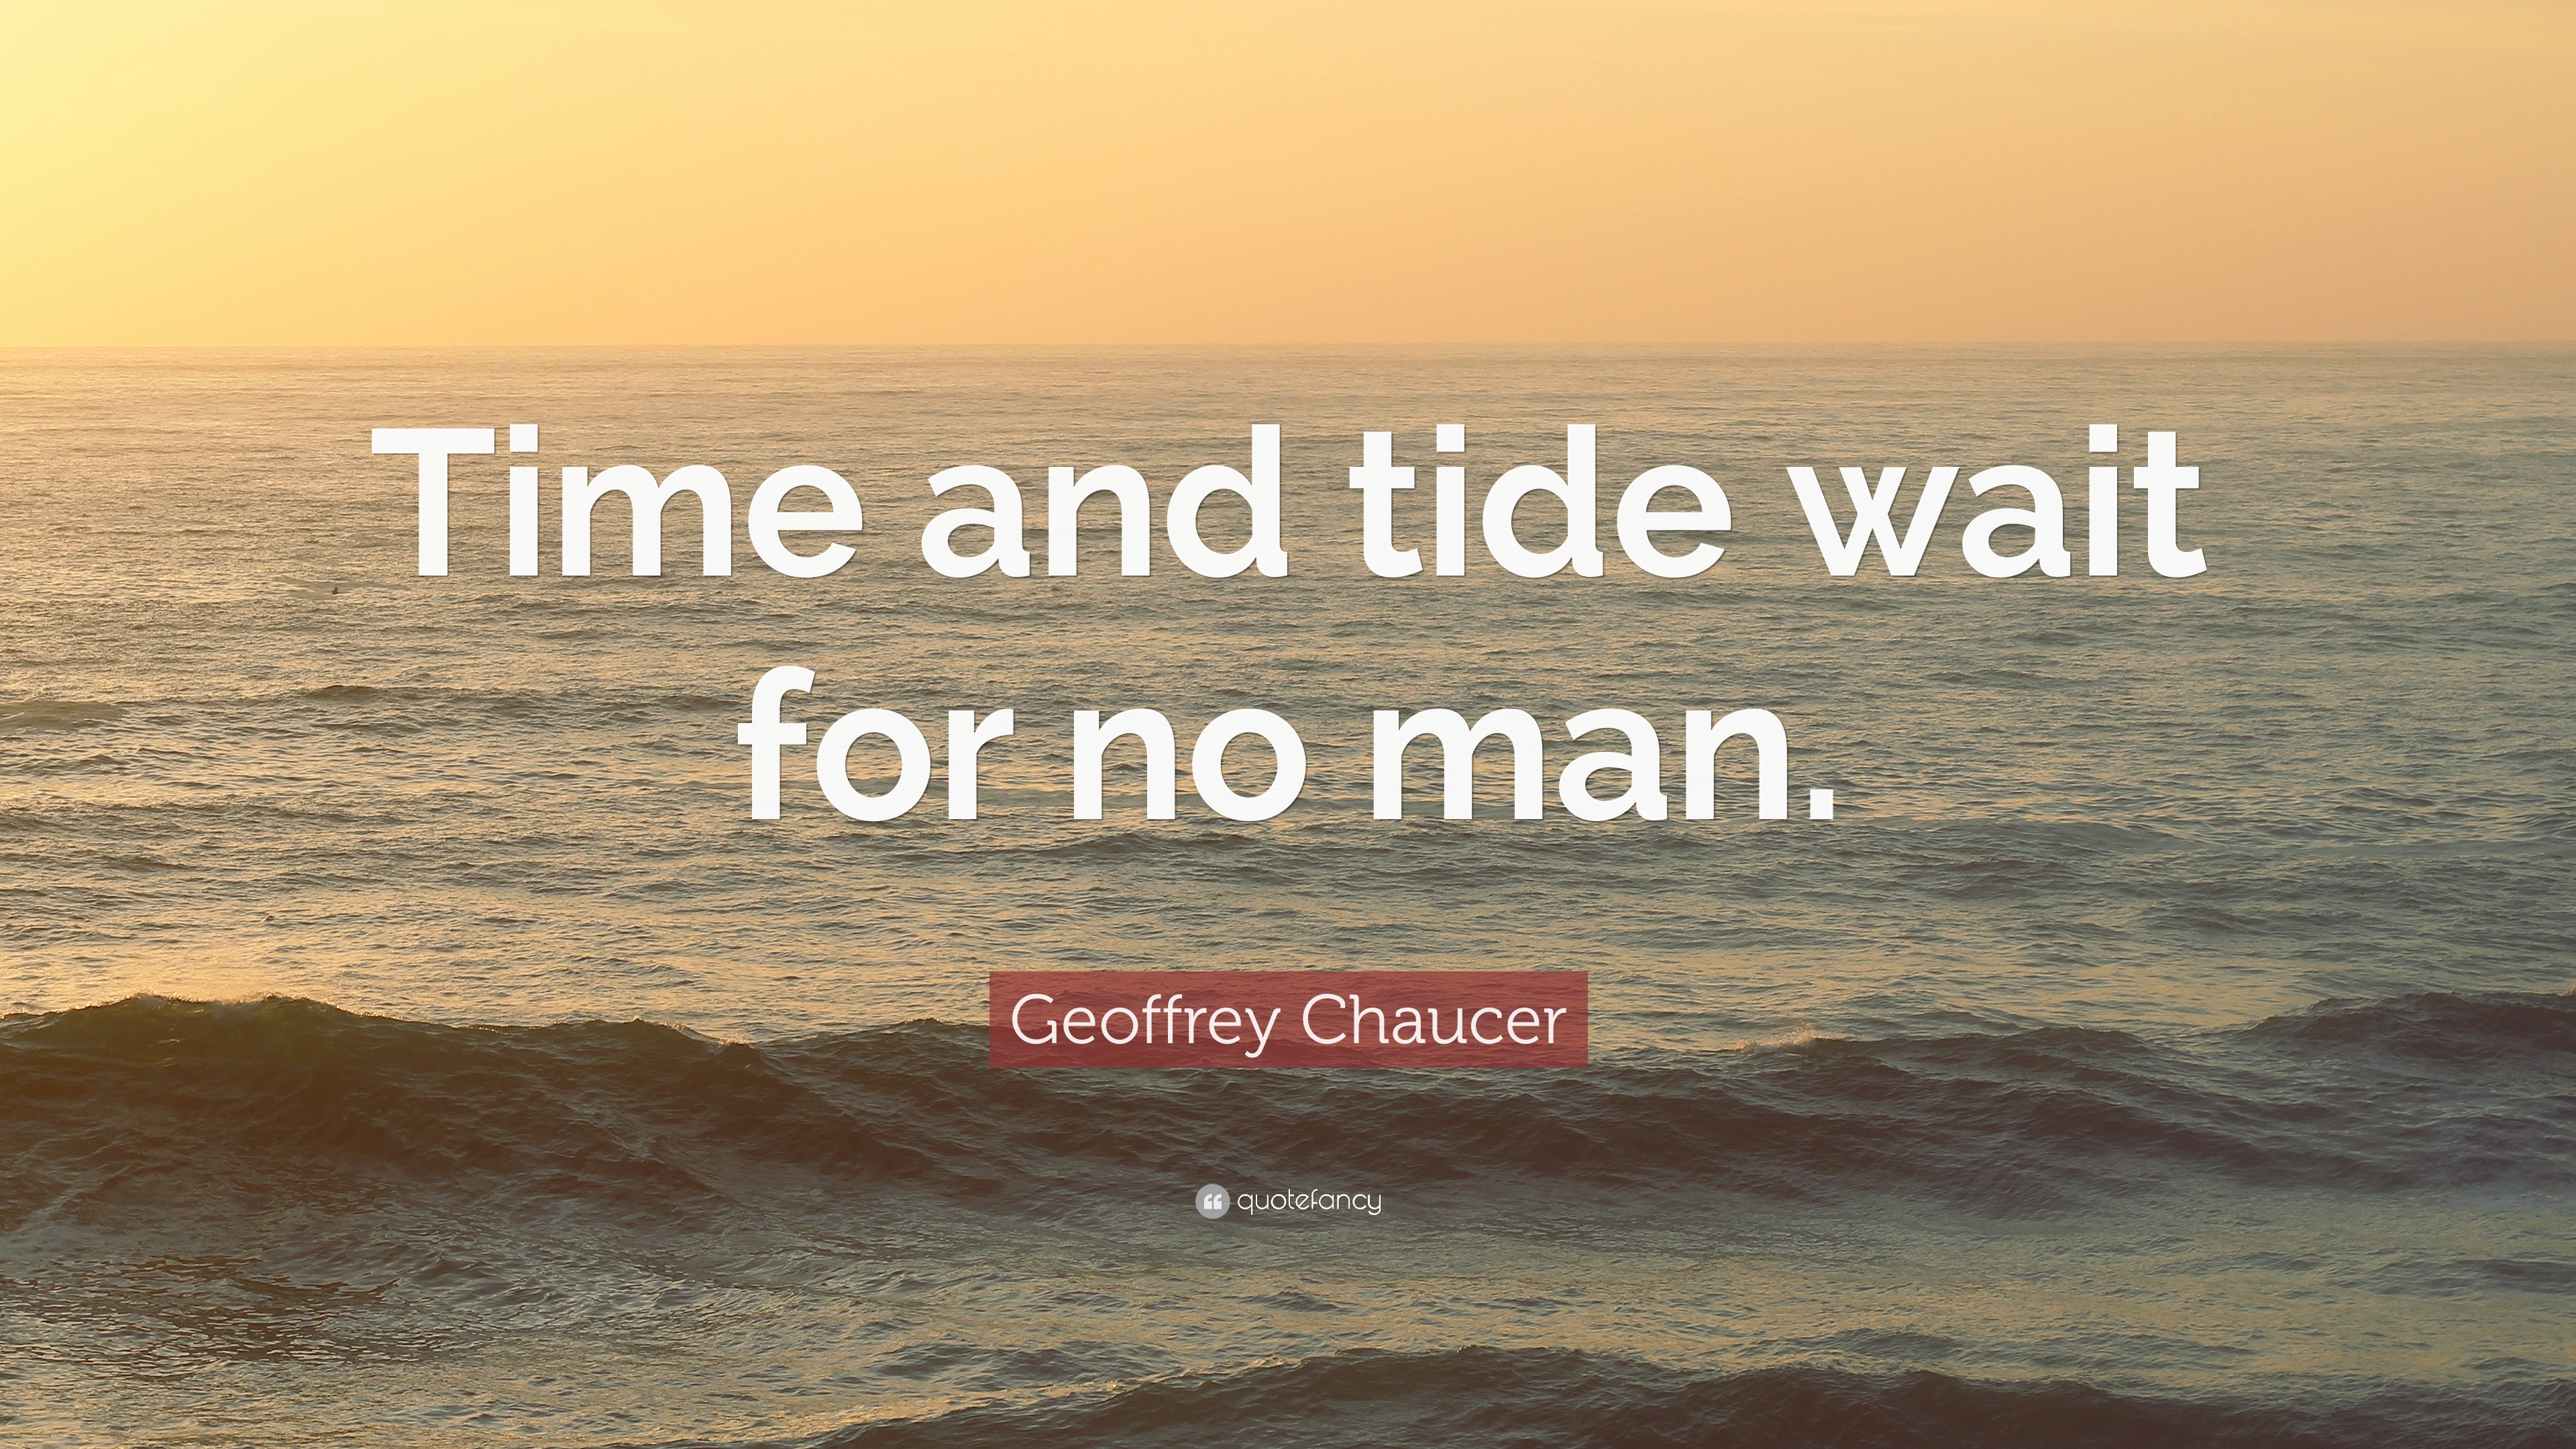 Geoffrey Chaucer Quote Time And Tide Wait For No Man 12